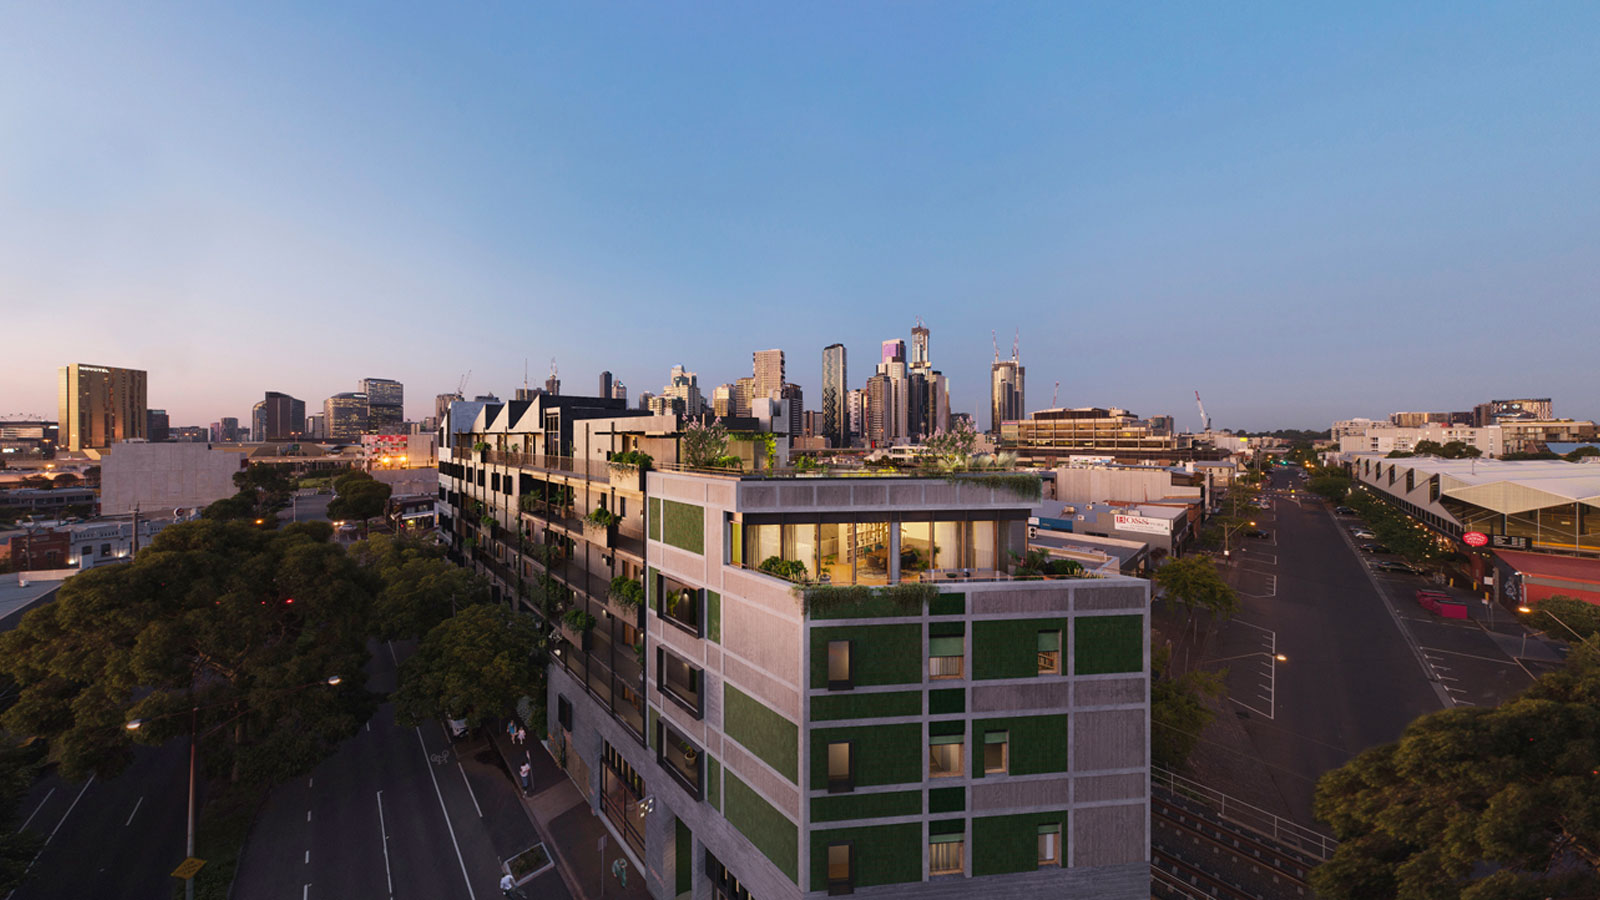 ▲ Hip V. Hype's Ferrars & York is a 22-apartment carbon neutral development in Melbourne that is currently under construction. Image: Hip V. Hype